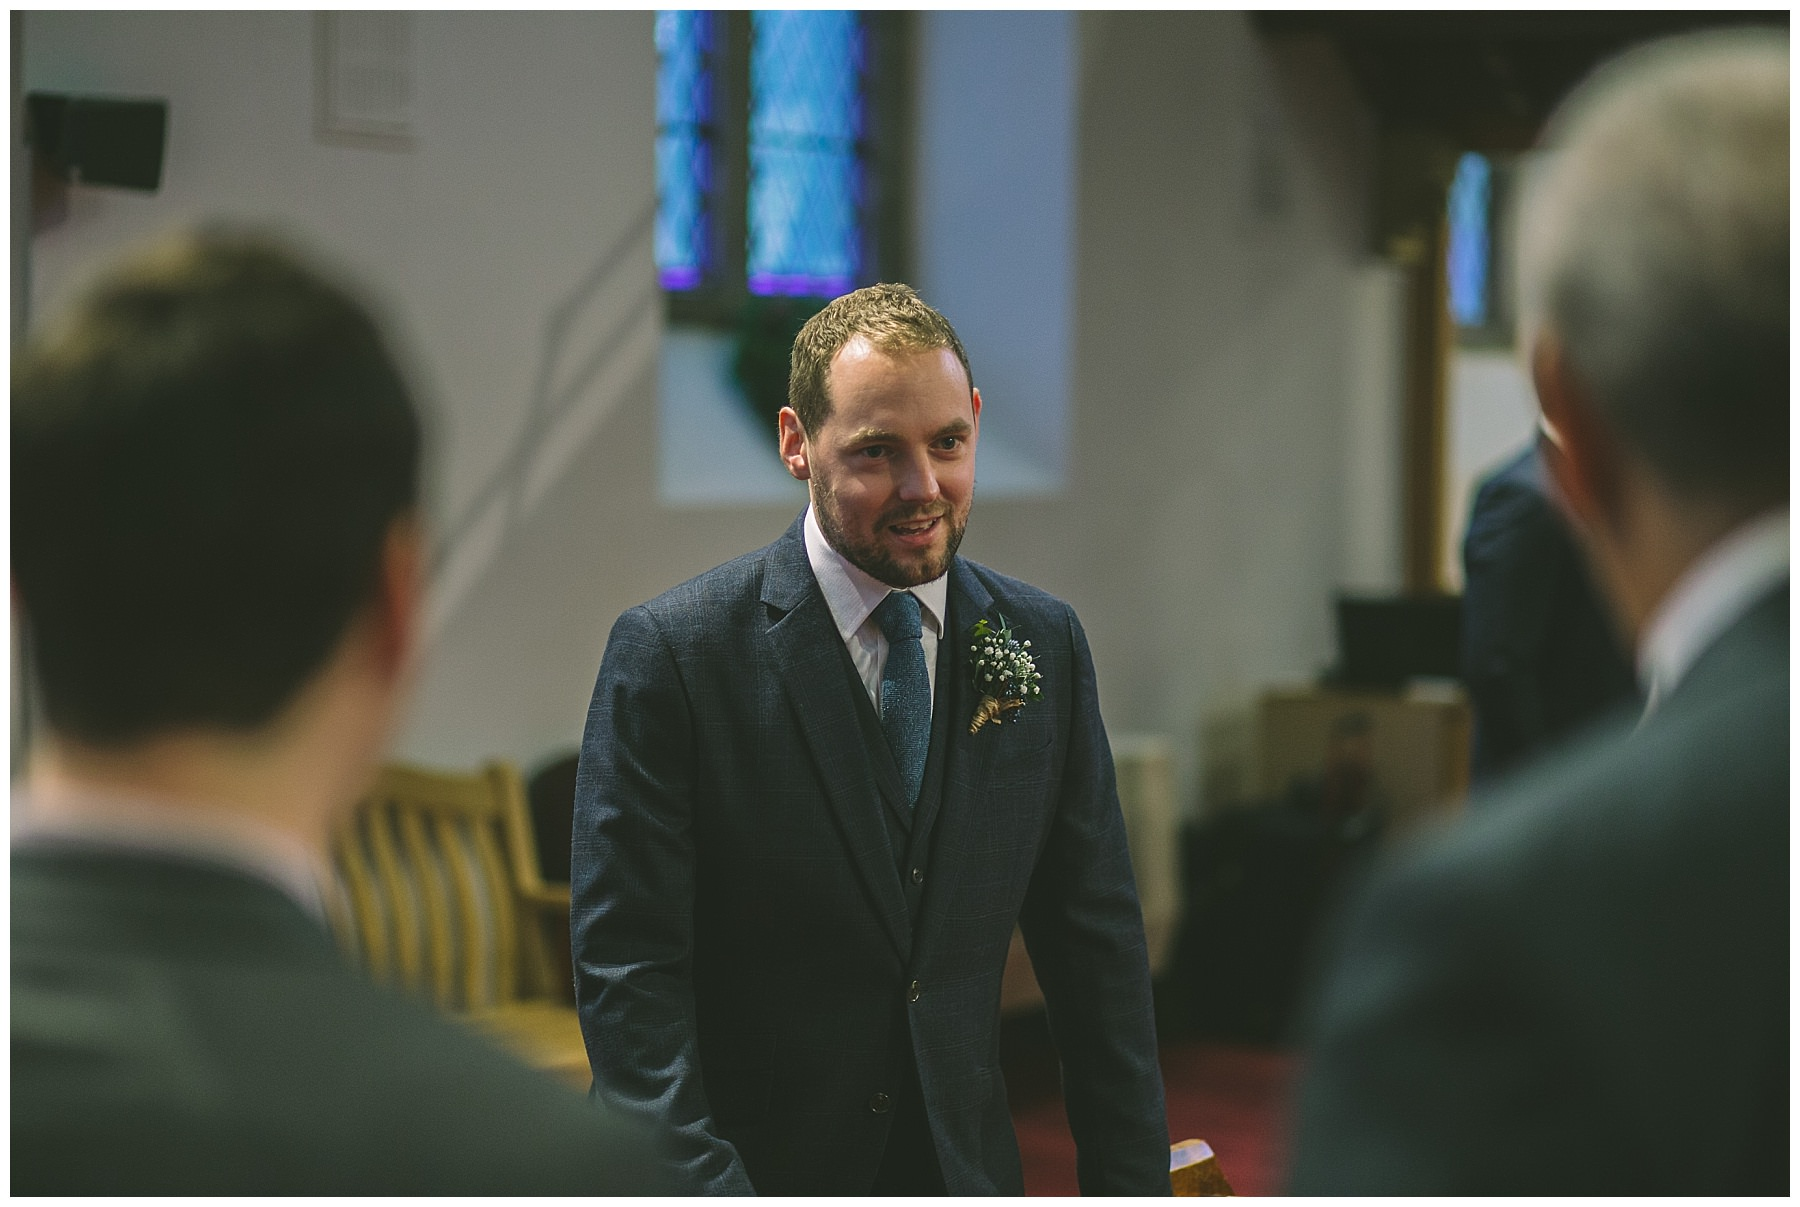 Groom waits for his bride in church